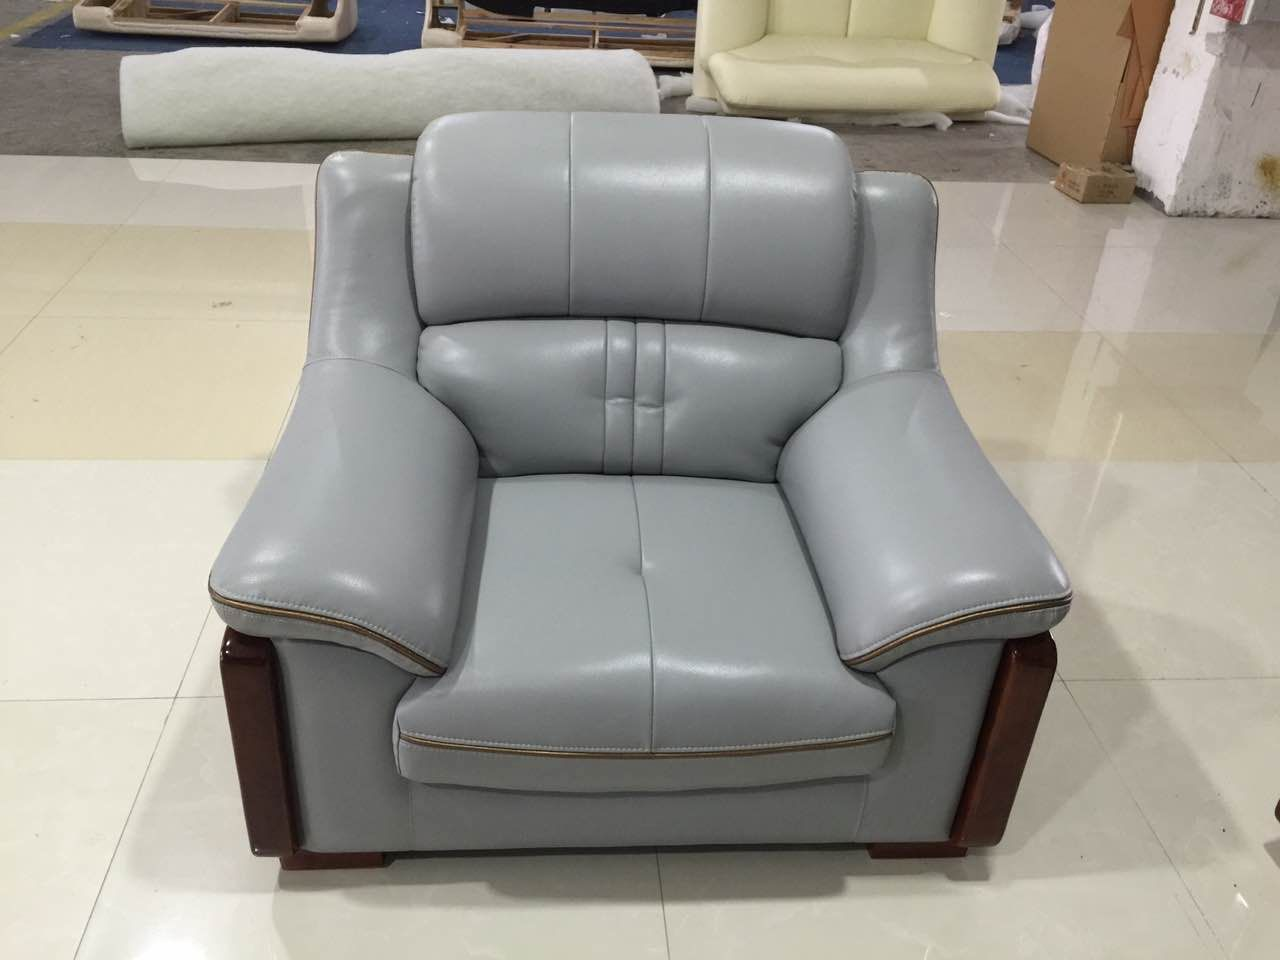 Good looking leather sofa comfortable one seater Comfortable Sofa, Sofa  Seats, Furniture Companies,